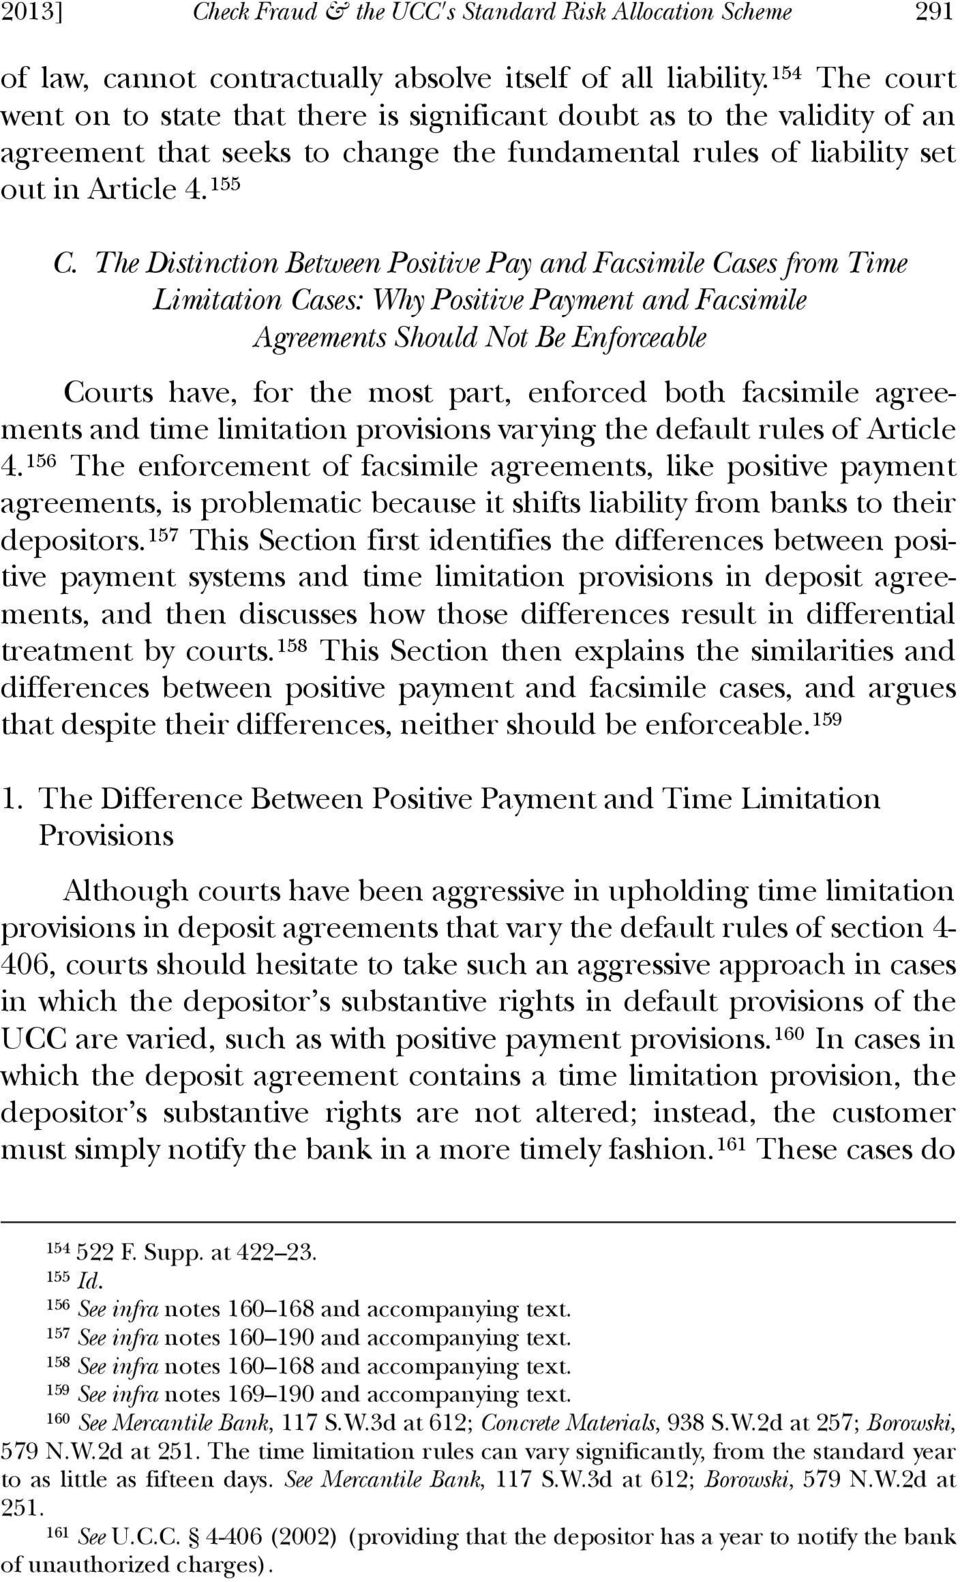 The Distinction Between Positive Pay and Facsimile Cases from Time Limitation Cases: Why Positive Payment and Facsimile Agreements Should Not Be Enforceable Courts have, for the most part, enforced